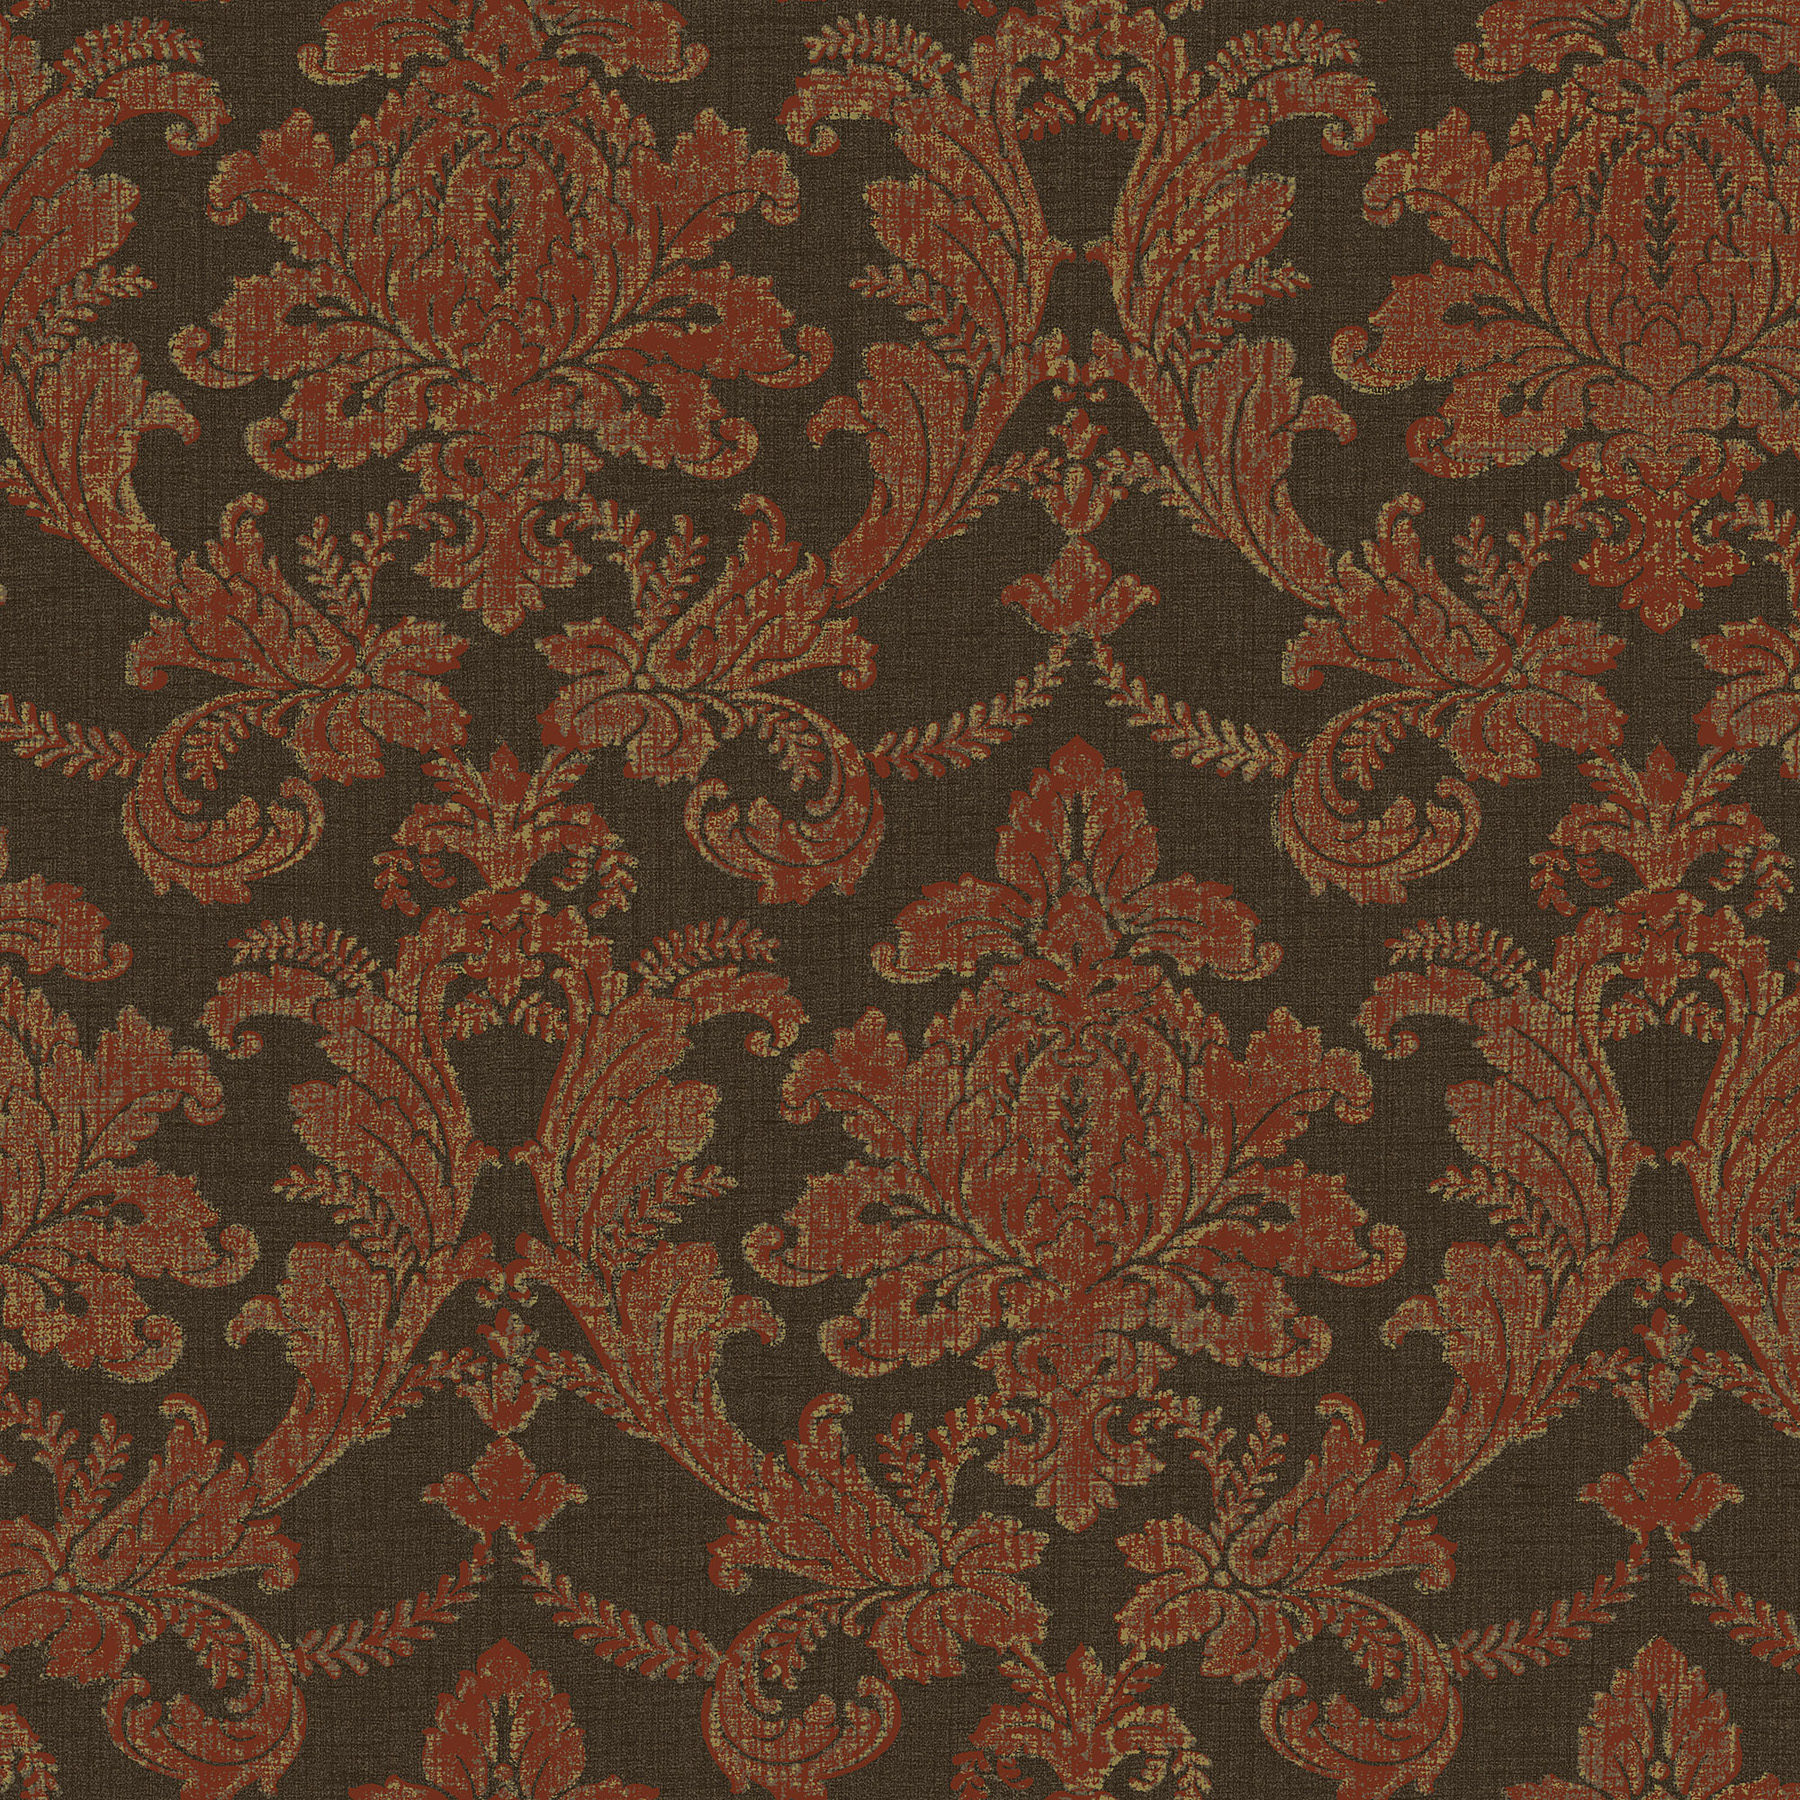 Picture of Brick Textured Damask Wallpaper